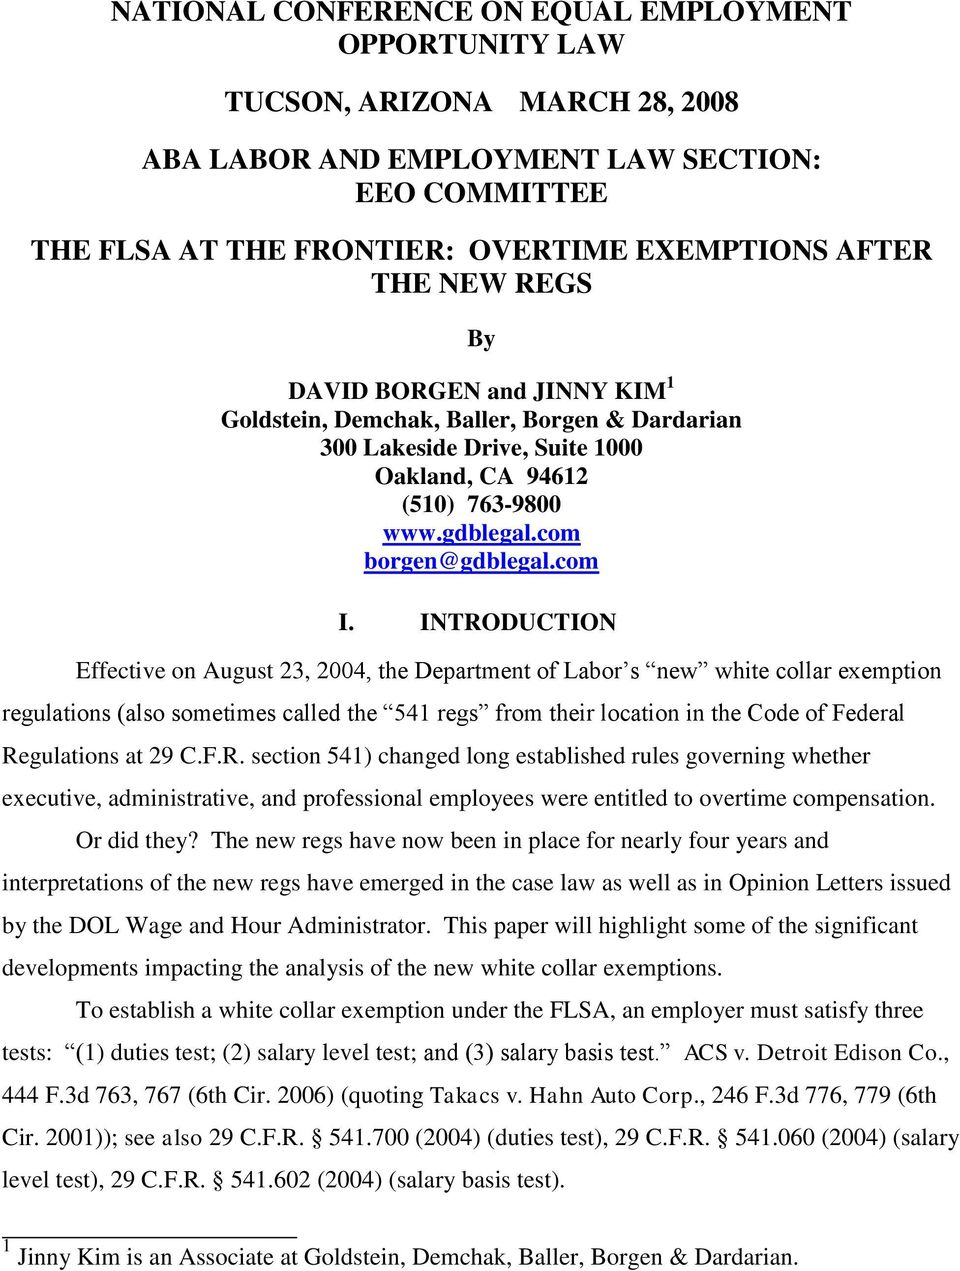 INTRODUCTION Effective on August 23, 2004, the Department of Labor s new white collar exemption regulations (also sometimes called the 541 regs from their location in the Code of Federal Regulations